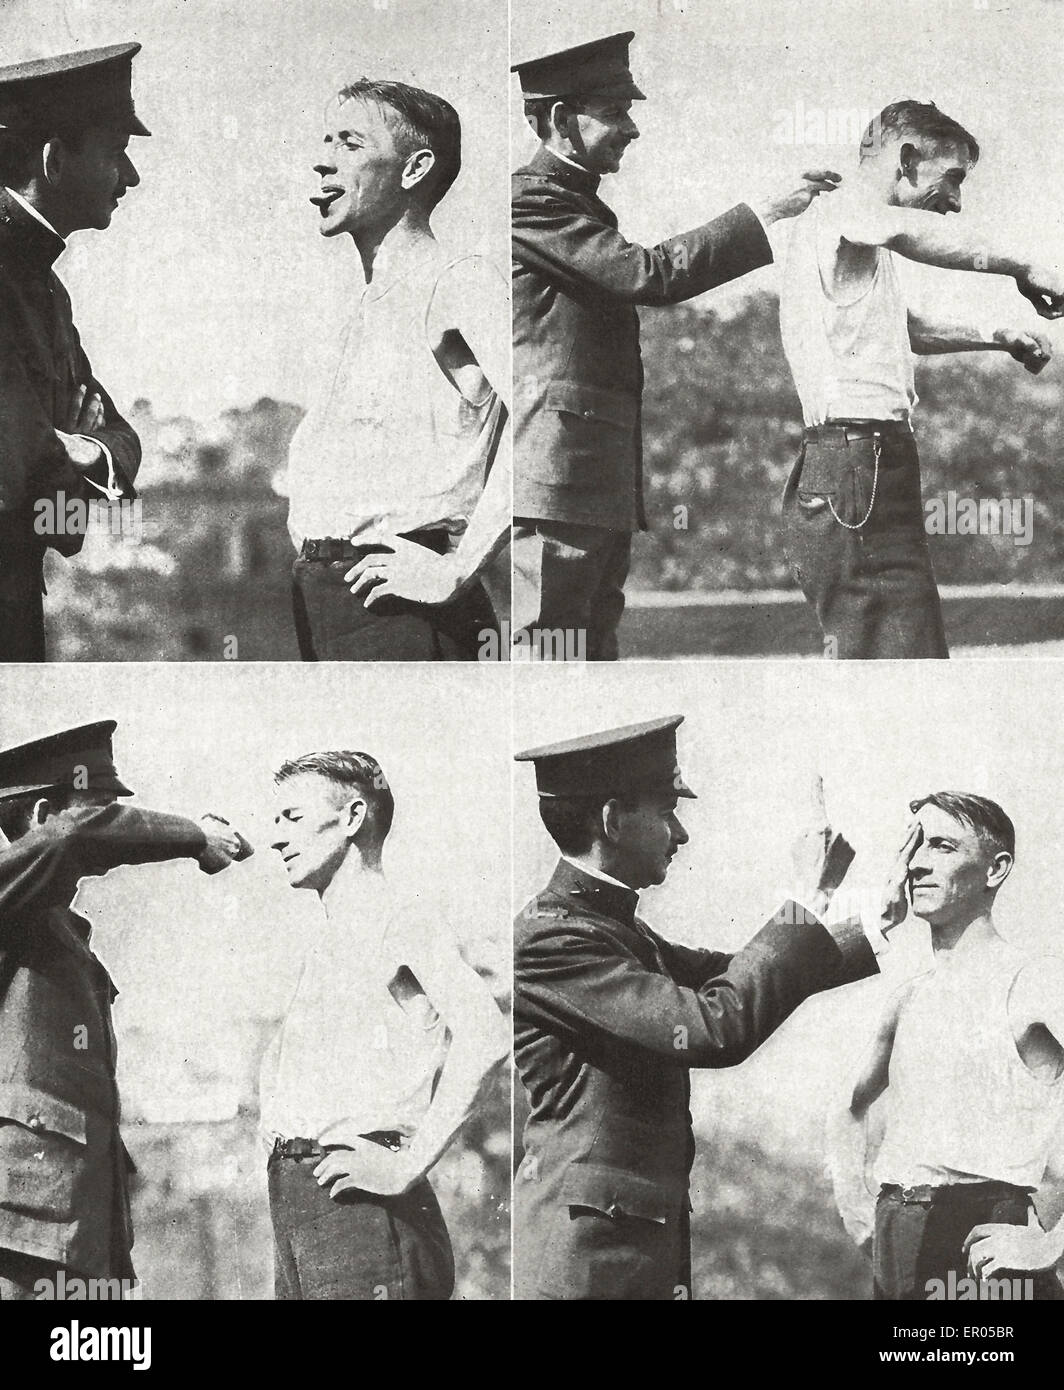 Only the physically fit were wanted - USA Draft 1917 - Stock Image